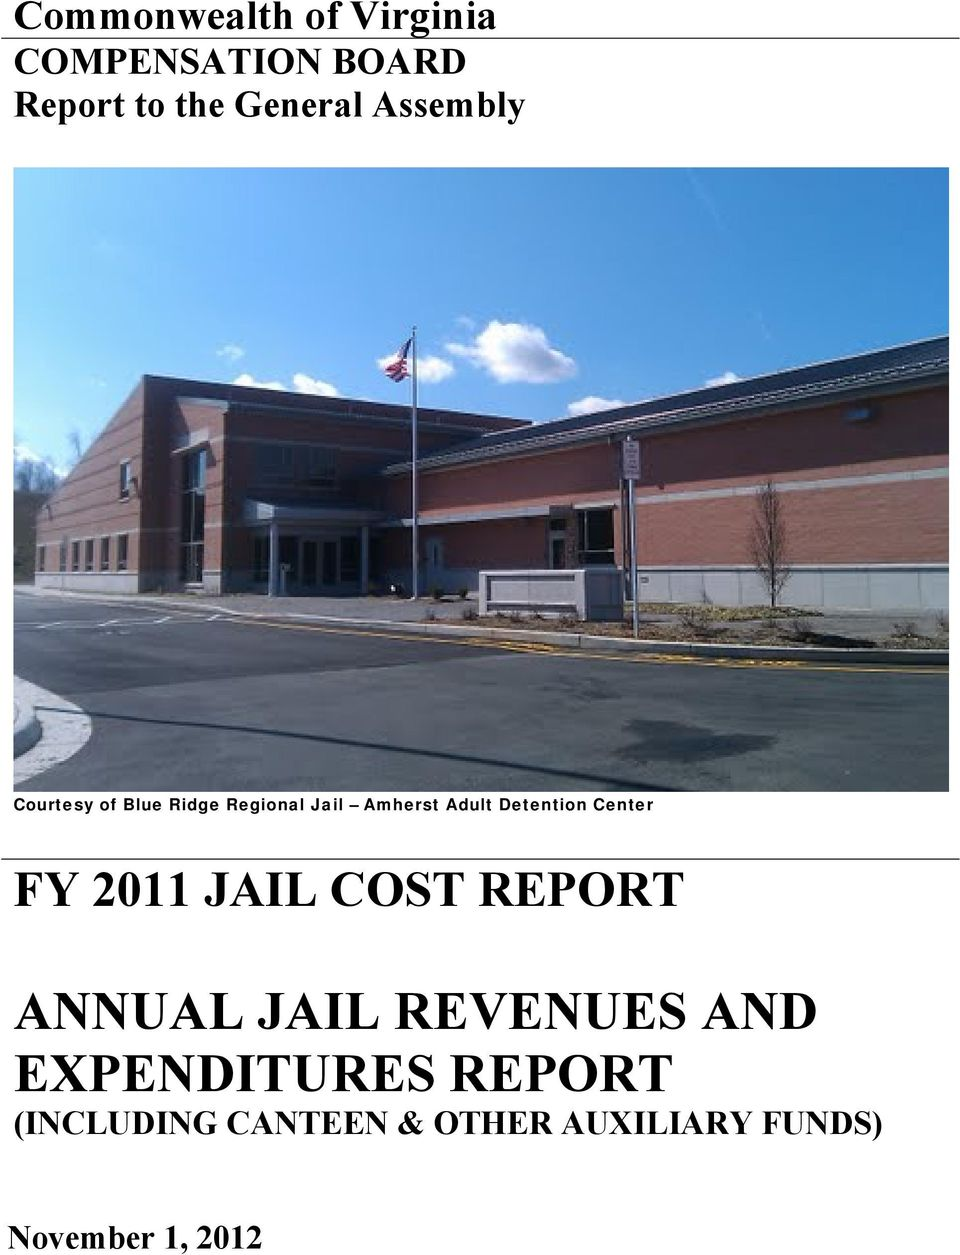 ANNUAL JAIL REVENUES AND EXPENDITURES REPORT (INCLUDING